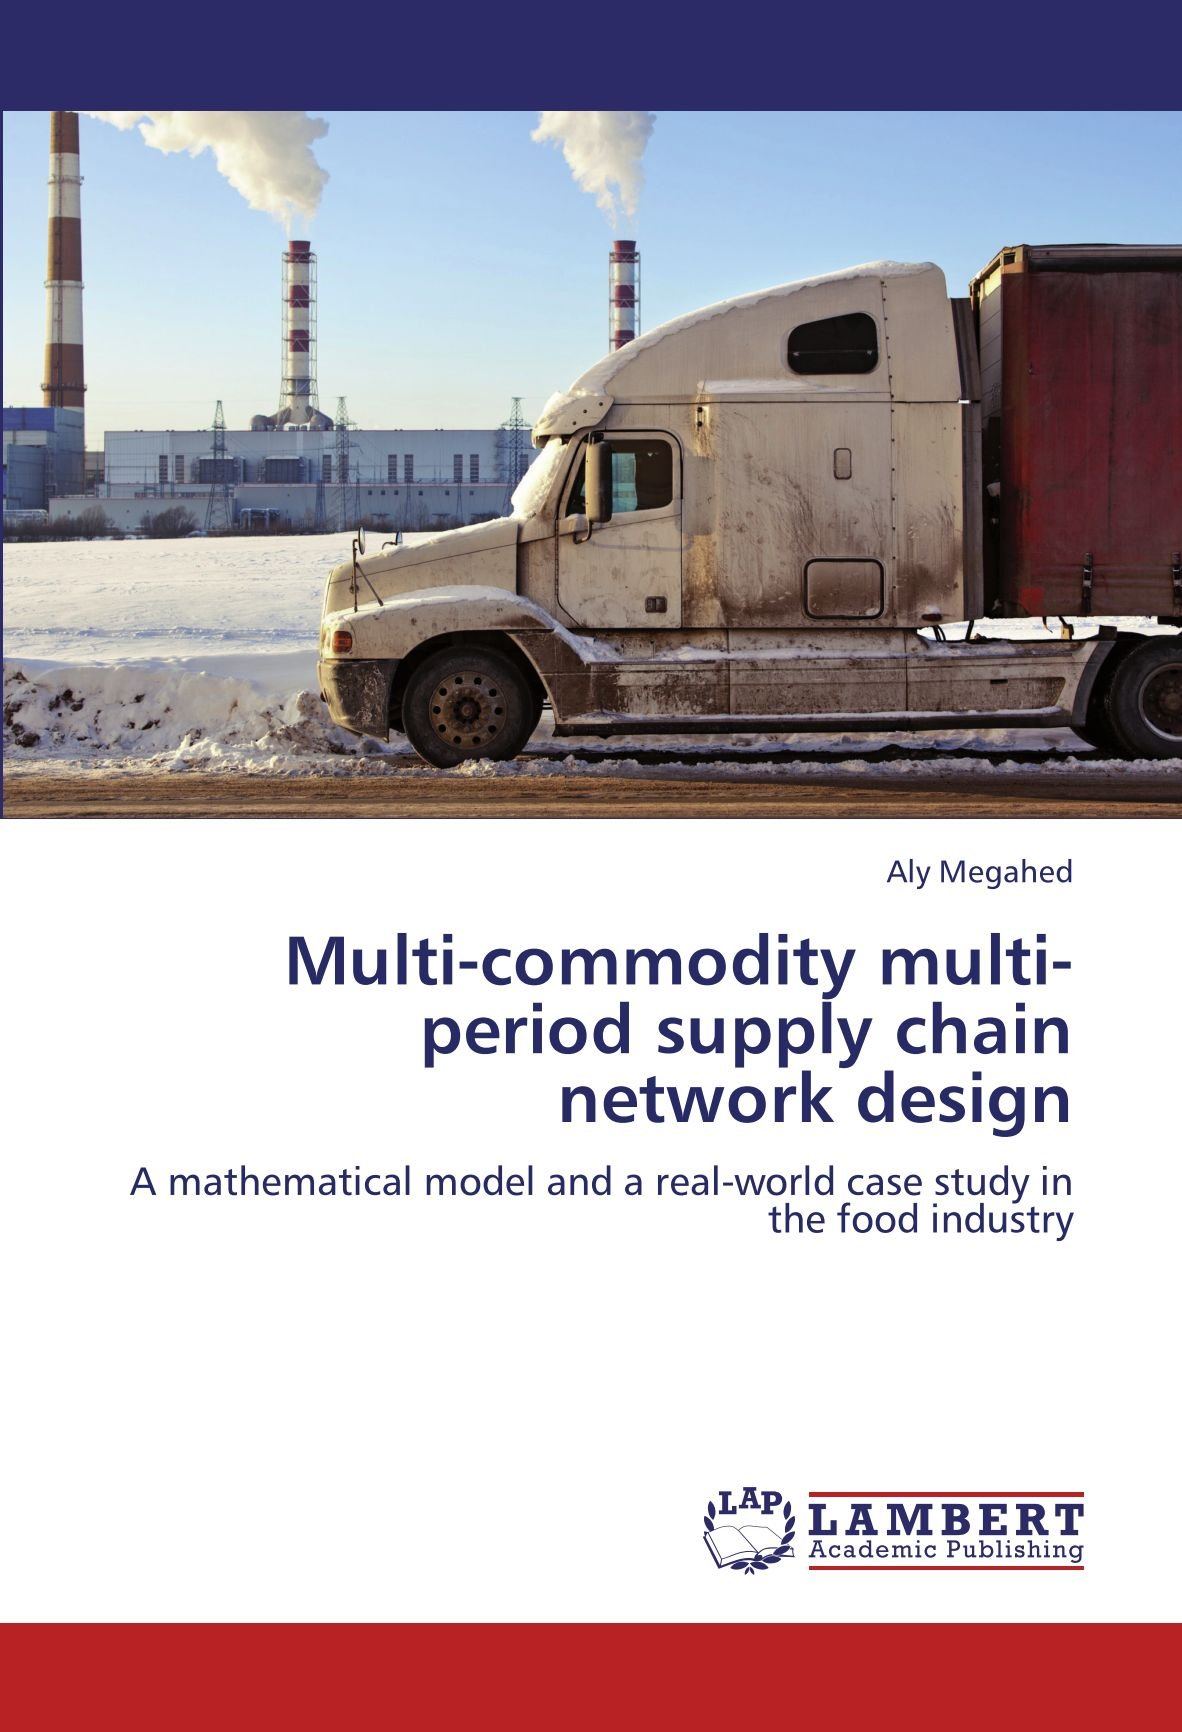 Multi-commodity multi-period supply chain network design: A mathematical model and a real-world case study in the food industry